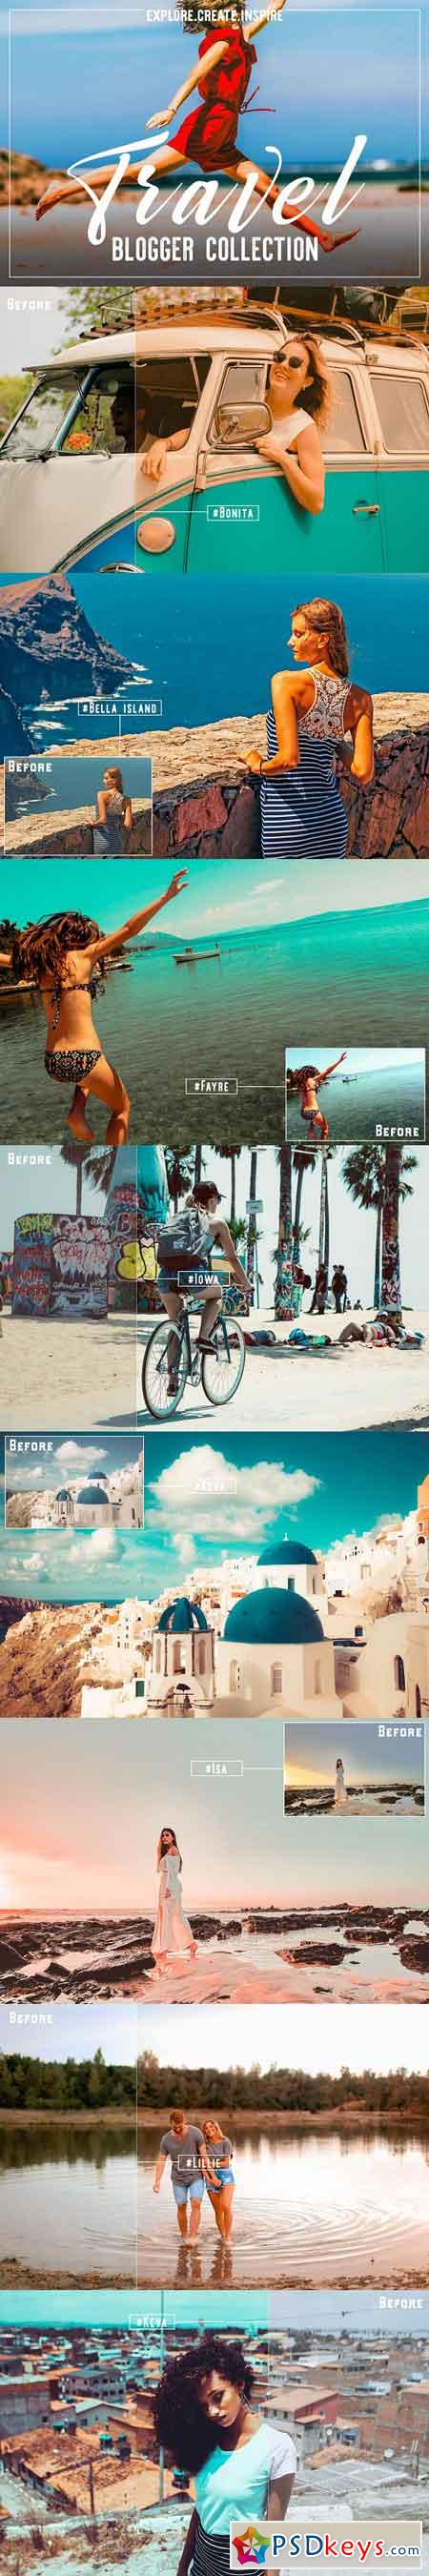 Travel Blogger Lr Acr Presets 3043539